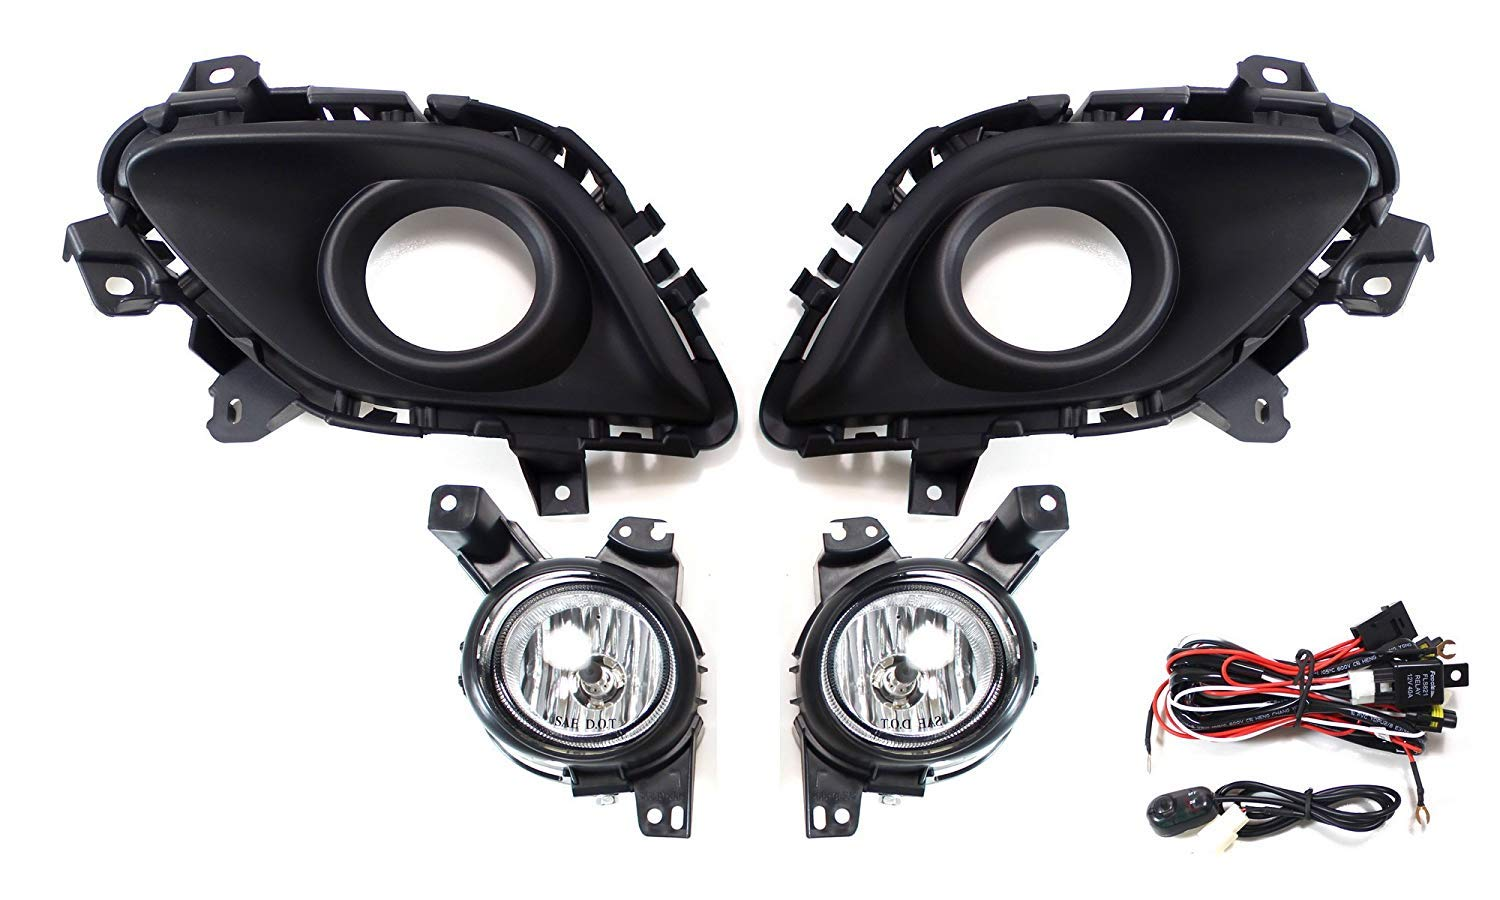 Ijdmtoy Complete Set Fog Lights Foglamp Kit With Halogen Mazda Wiring Housing Bulbs On Off Switch And Garnish Bezel Covers For 2014 2016 6 Excluding